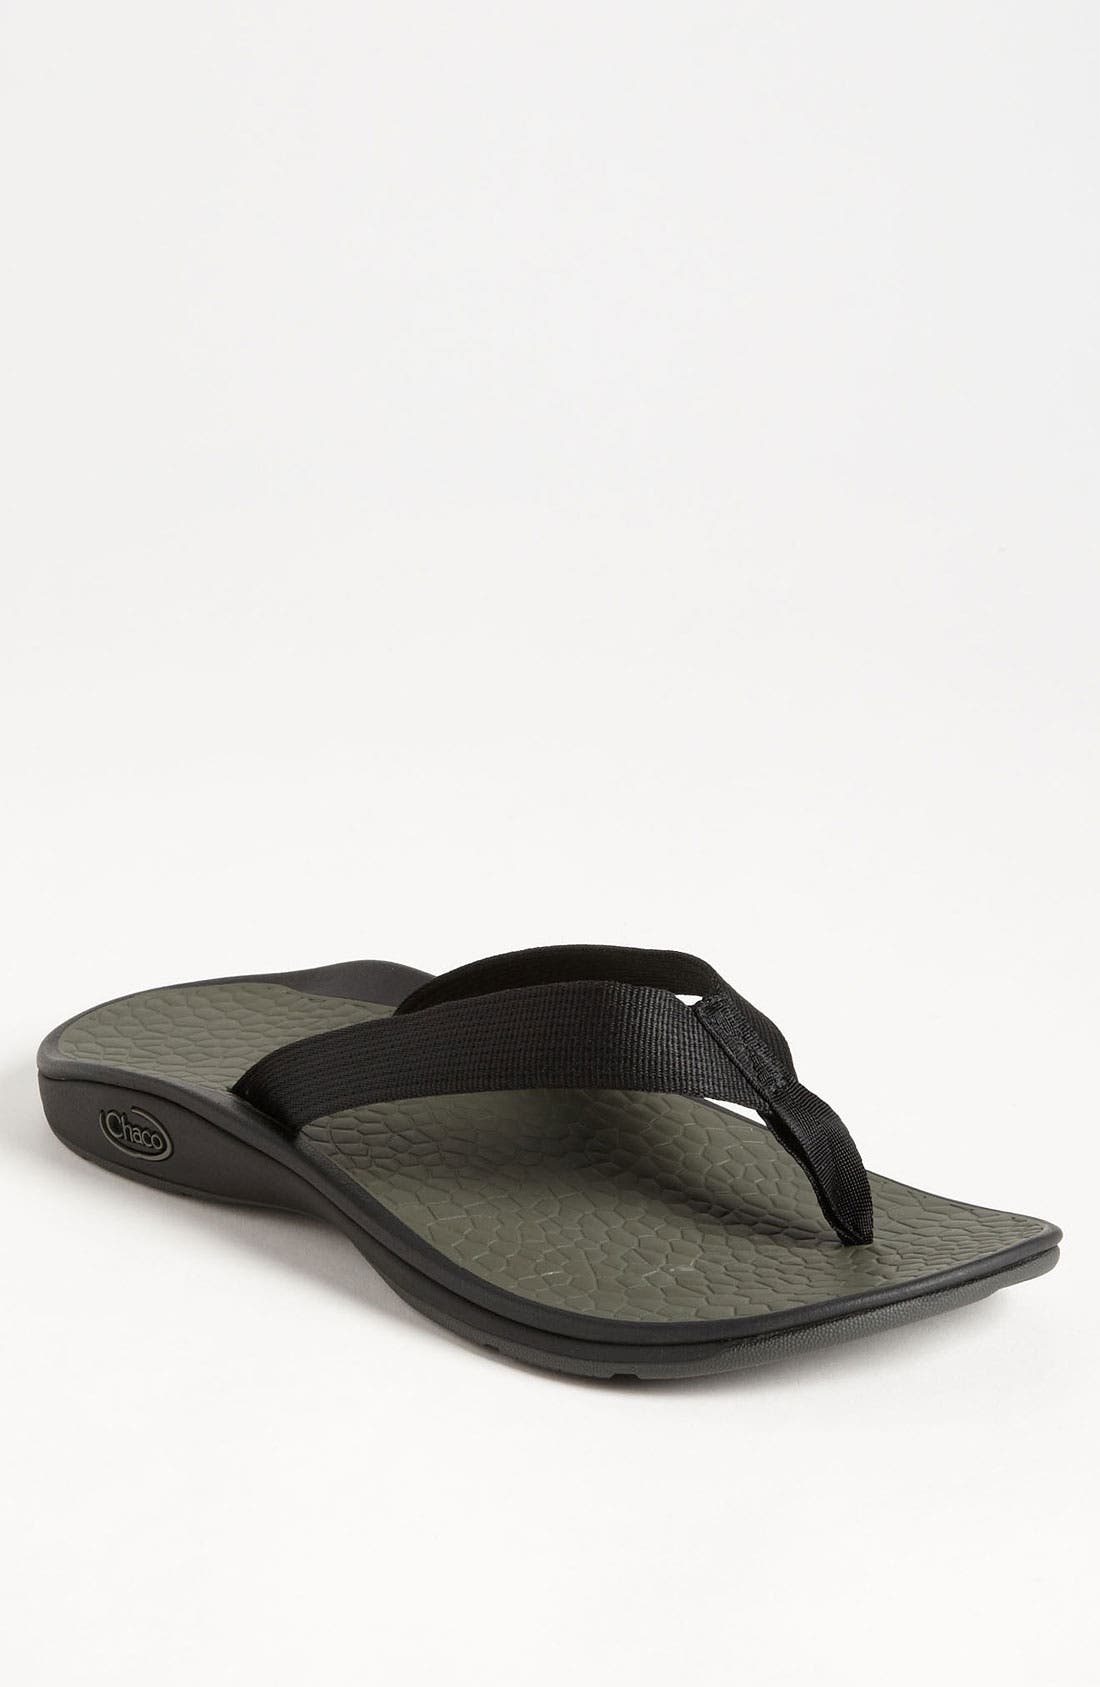 Alternate Image 1 Selected - Chaco 'Fathom' Flip Flop (Men)